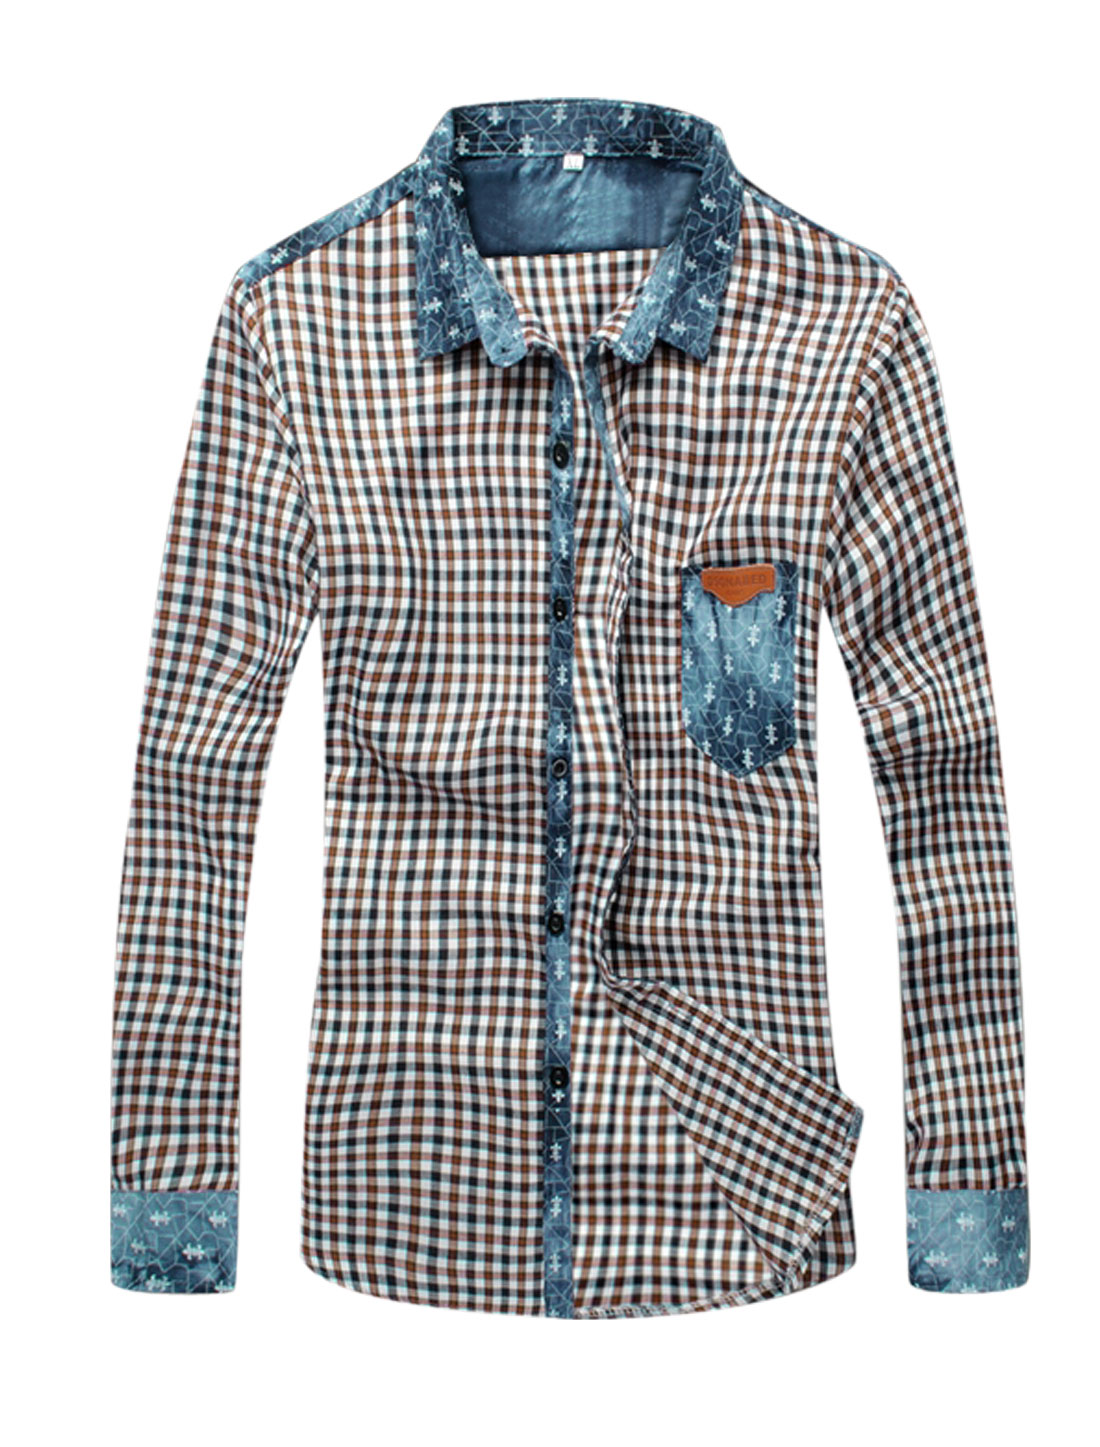 Splicing Long Sleeves Plaids Button Down Coffee White Casual Shirt for Man S